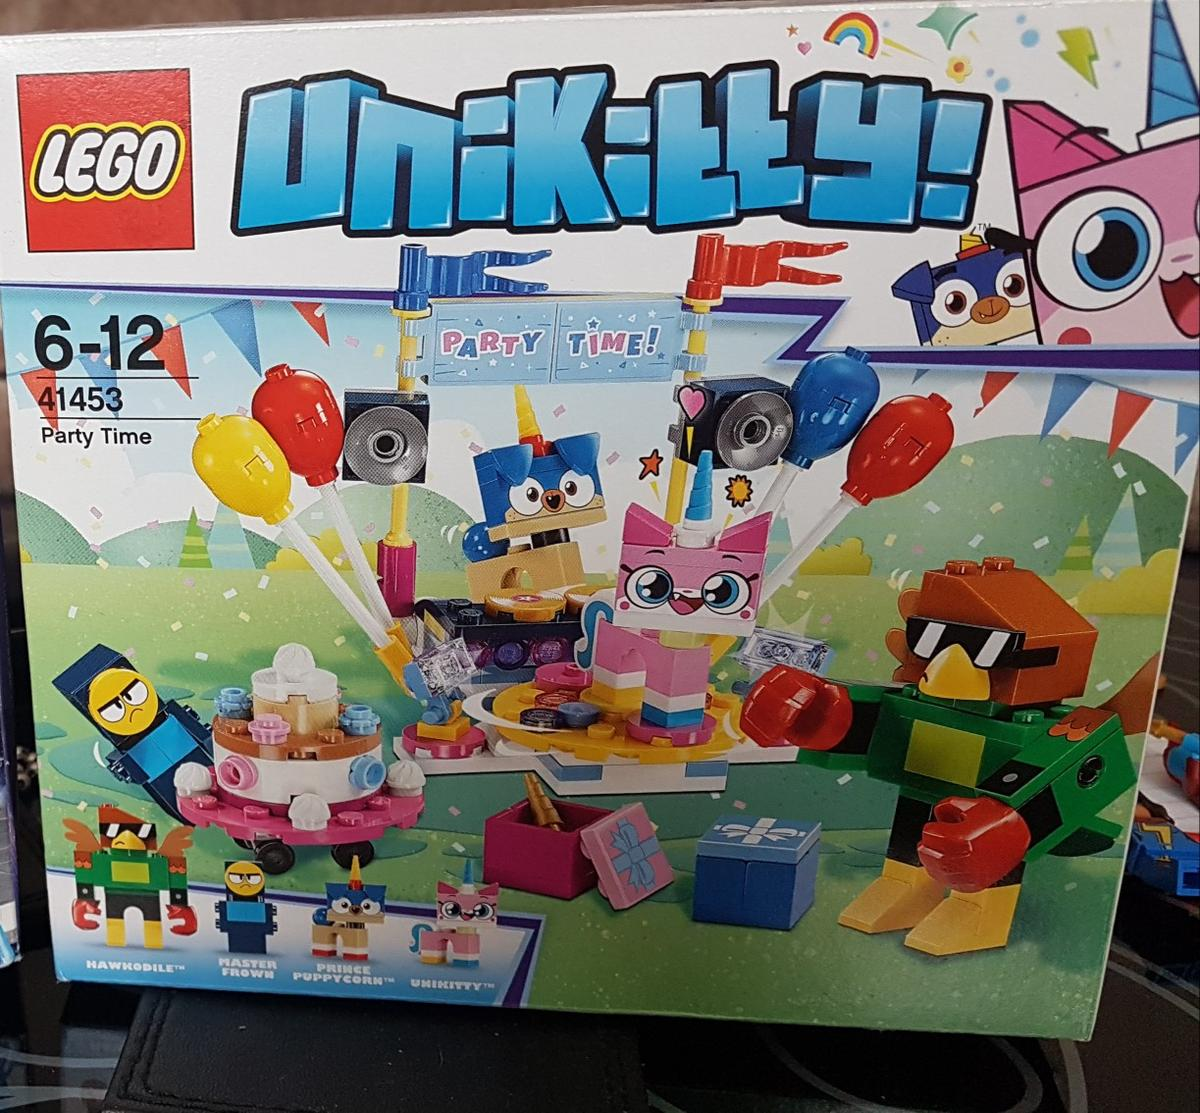 Brand New Complete Unopened Box Lego 41453 Unikitty Party Time